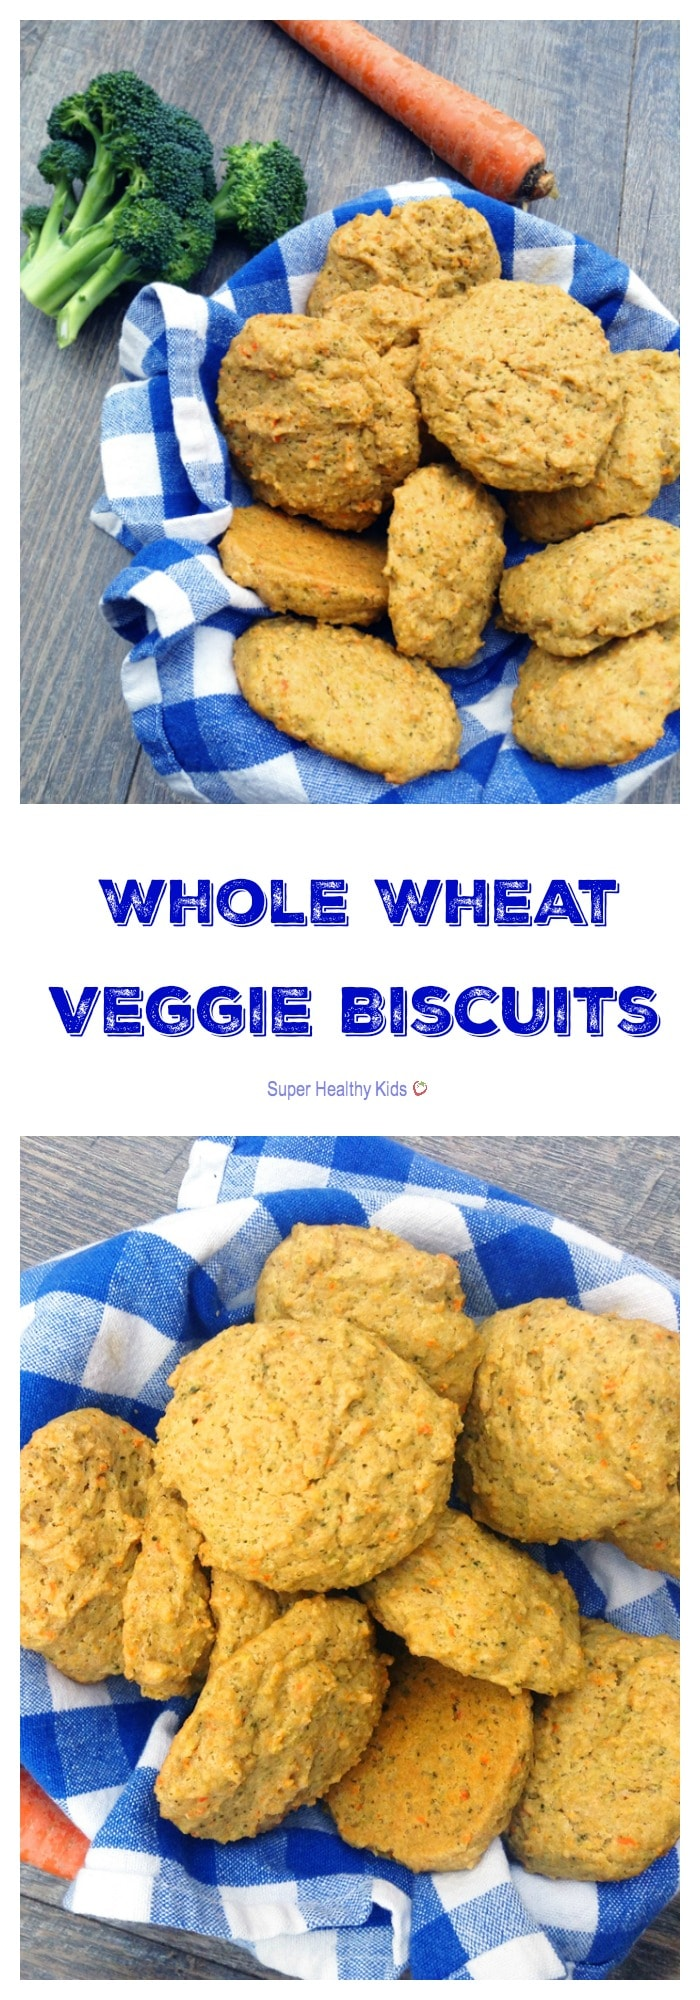 Whole Wheat Veggie Biscuits. Bust picky eating with these buttery whole wheat biscuits packed with broccoli and carrots! http://www.superhealthykids.com/broccoli-and-carrot-biscuits/